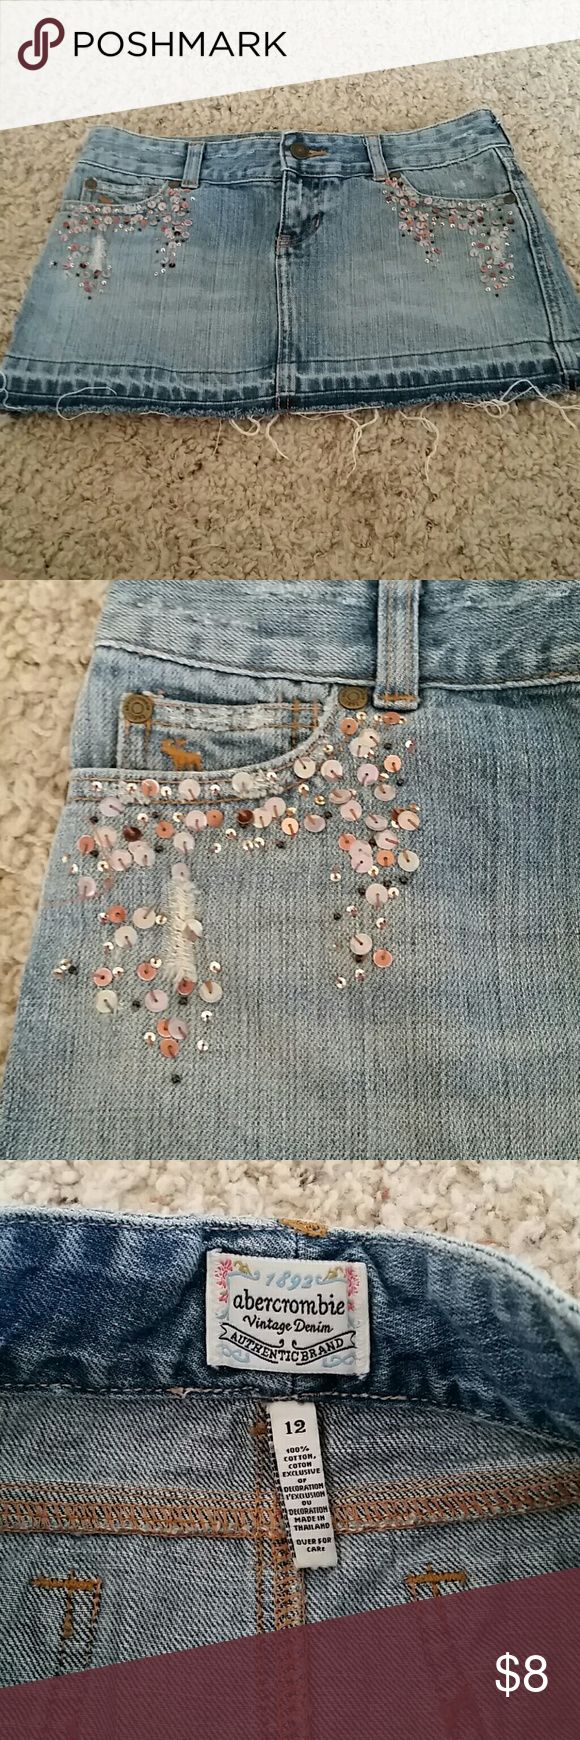 Vintage denim Abercrombie jean skirt Like new distressed, sequin detail jean skirt Abercrombie & Fitch Bottoms Skirts